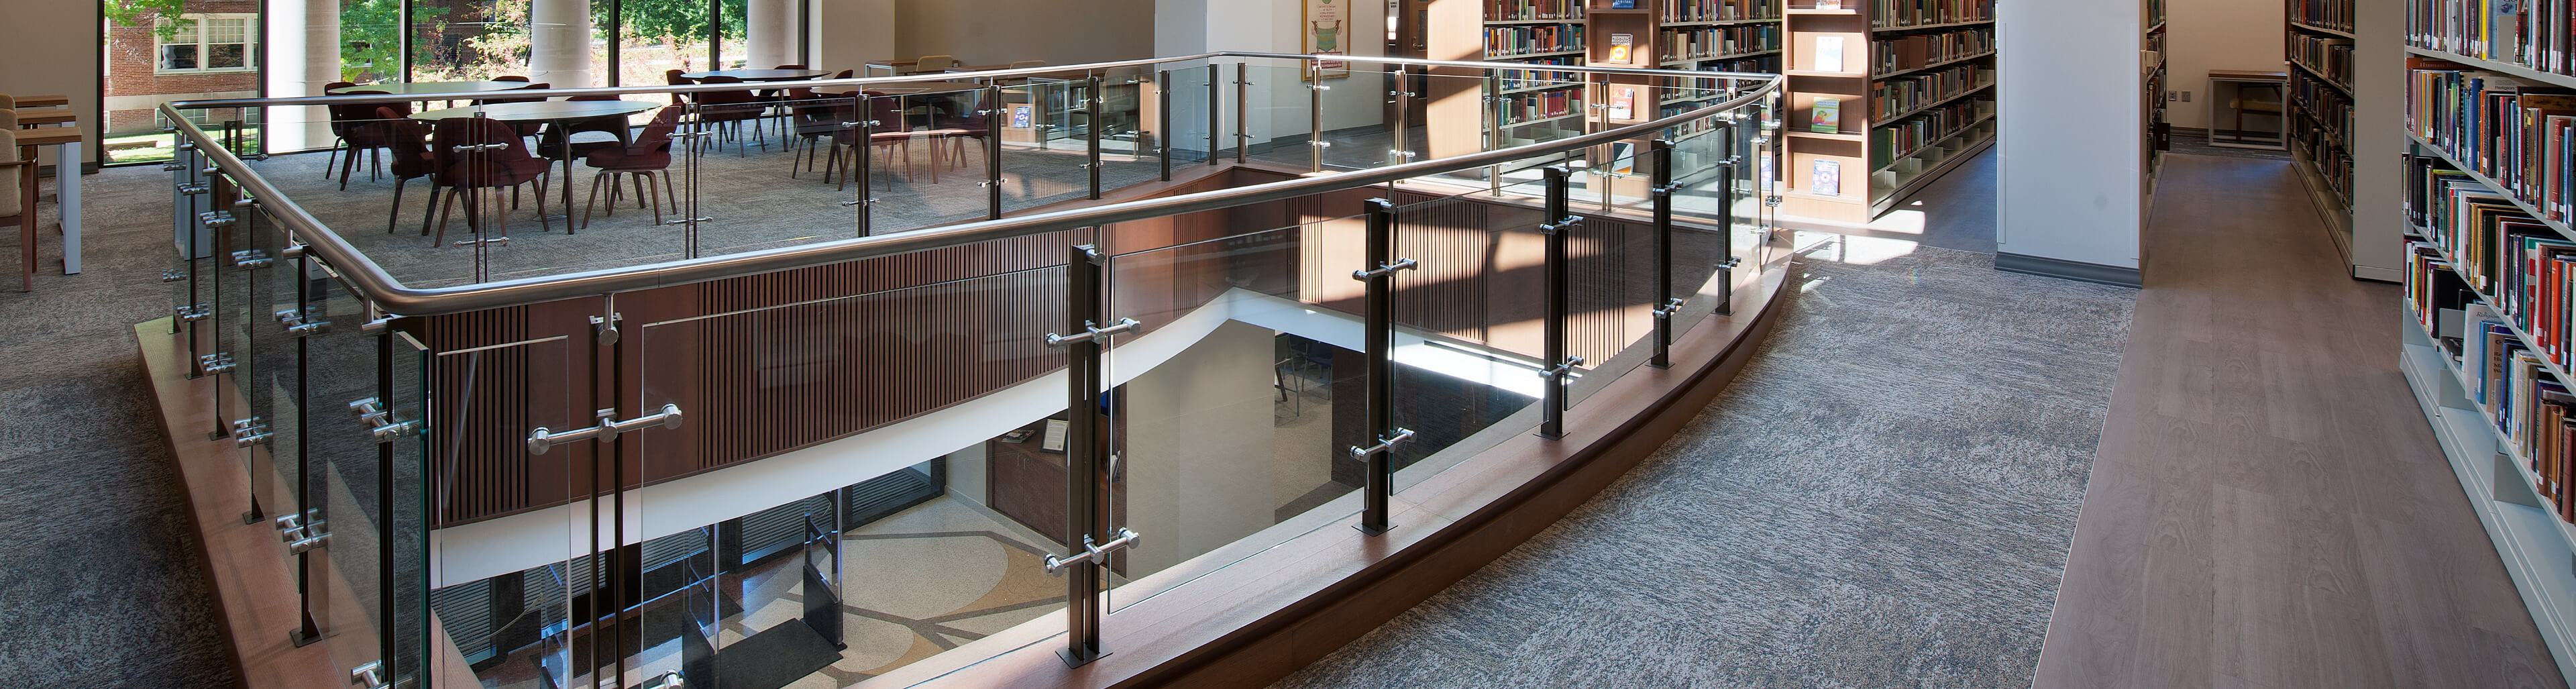 Ferric railing complements design concept at Theological Seminary